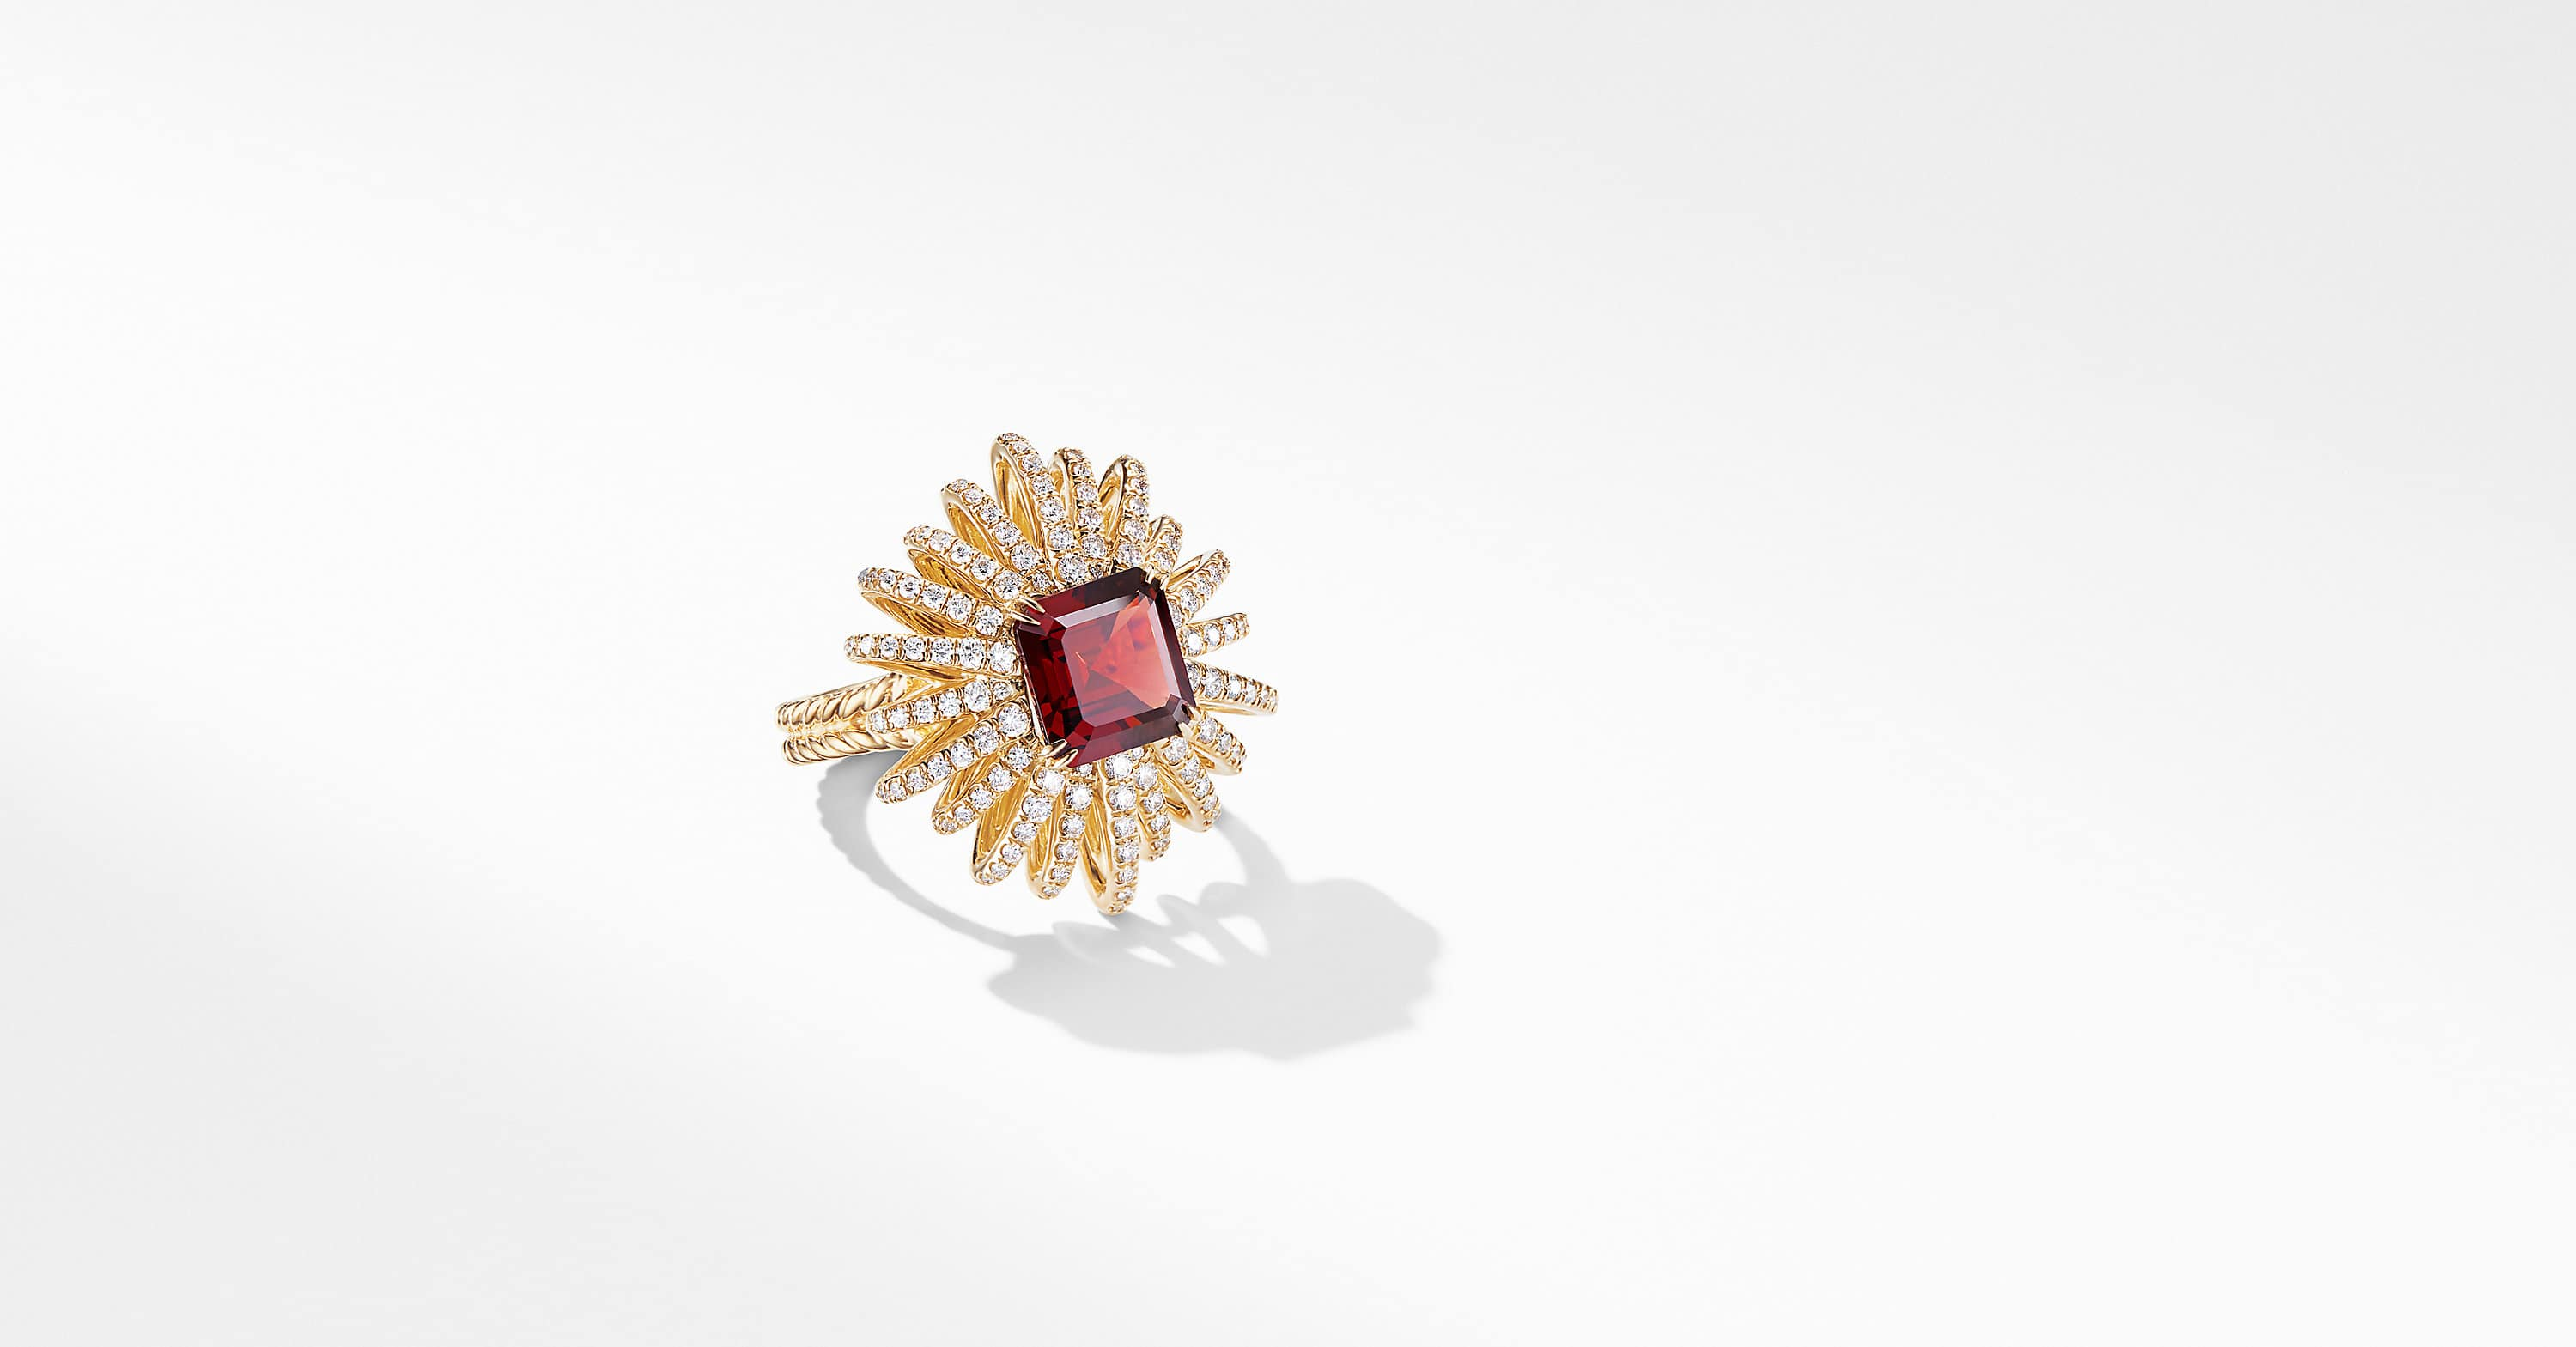 Starburst Ring in 18K Yellow Gold with Diamonds, 25mm